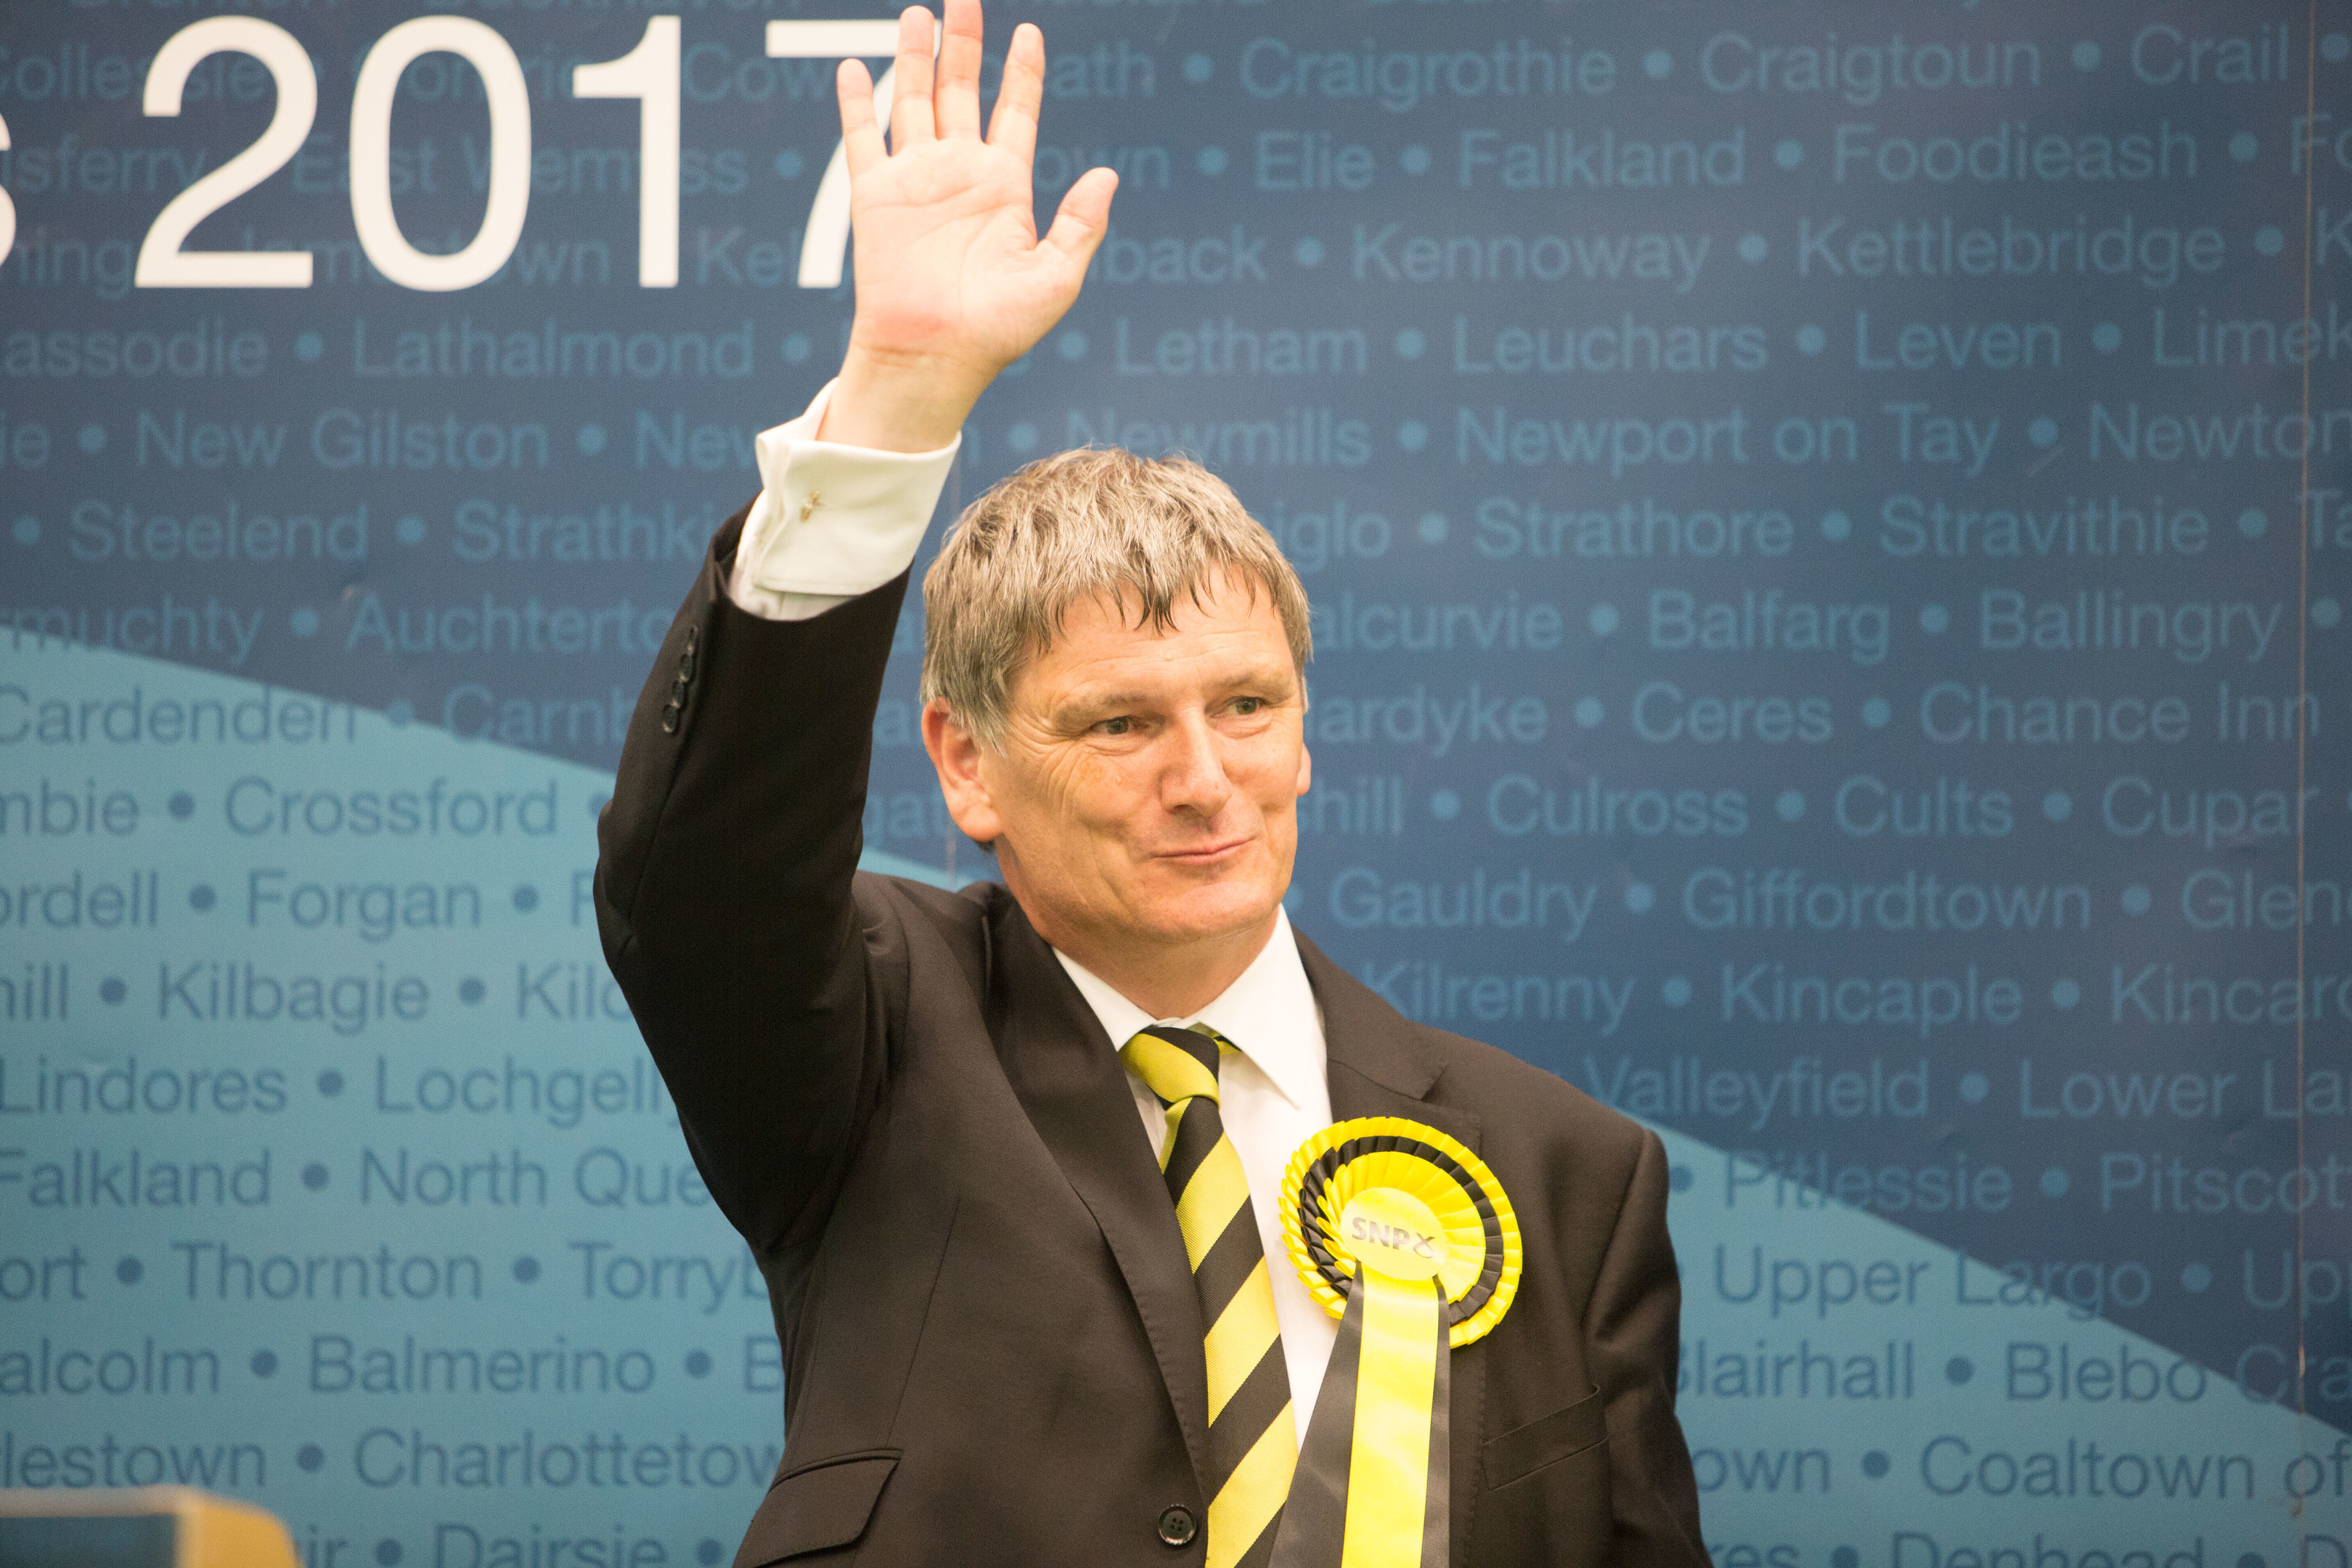 Glenrothes re-elects Peter Grant (SNP).